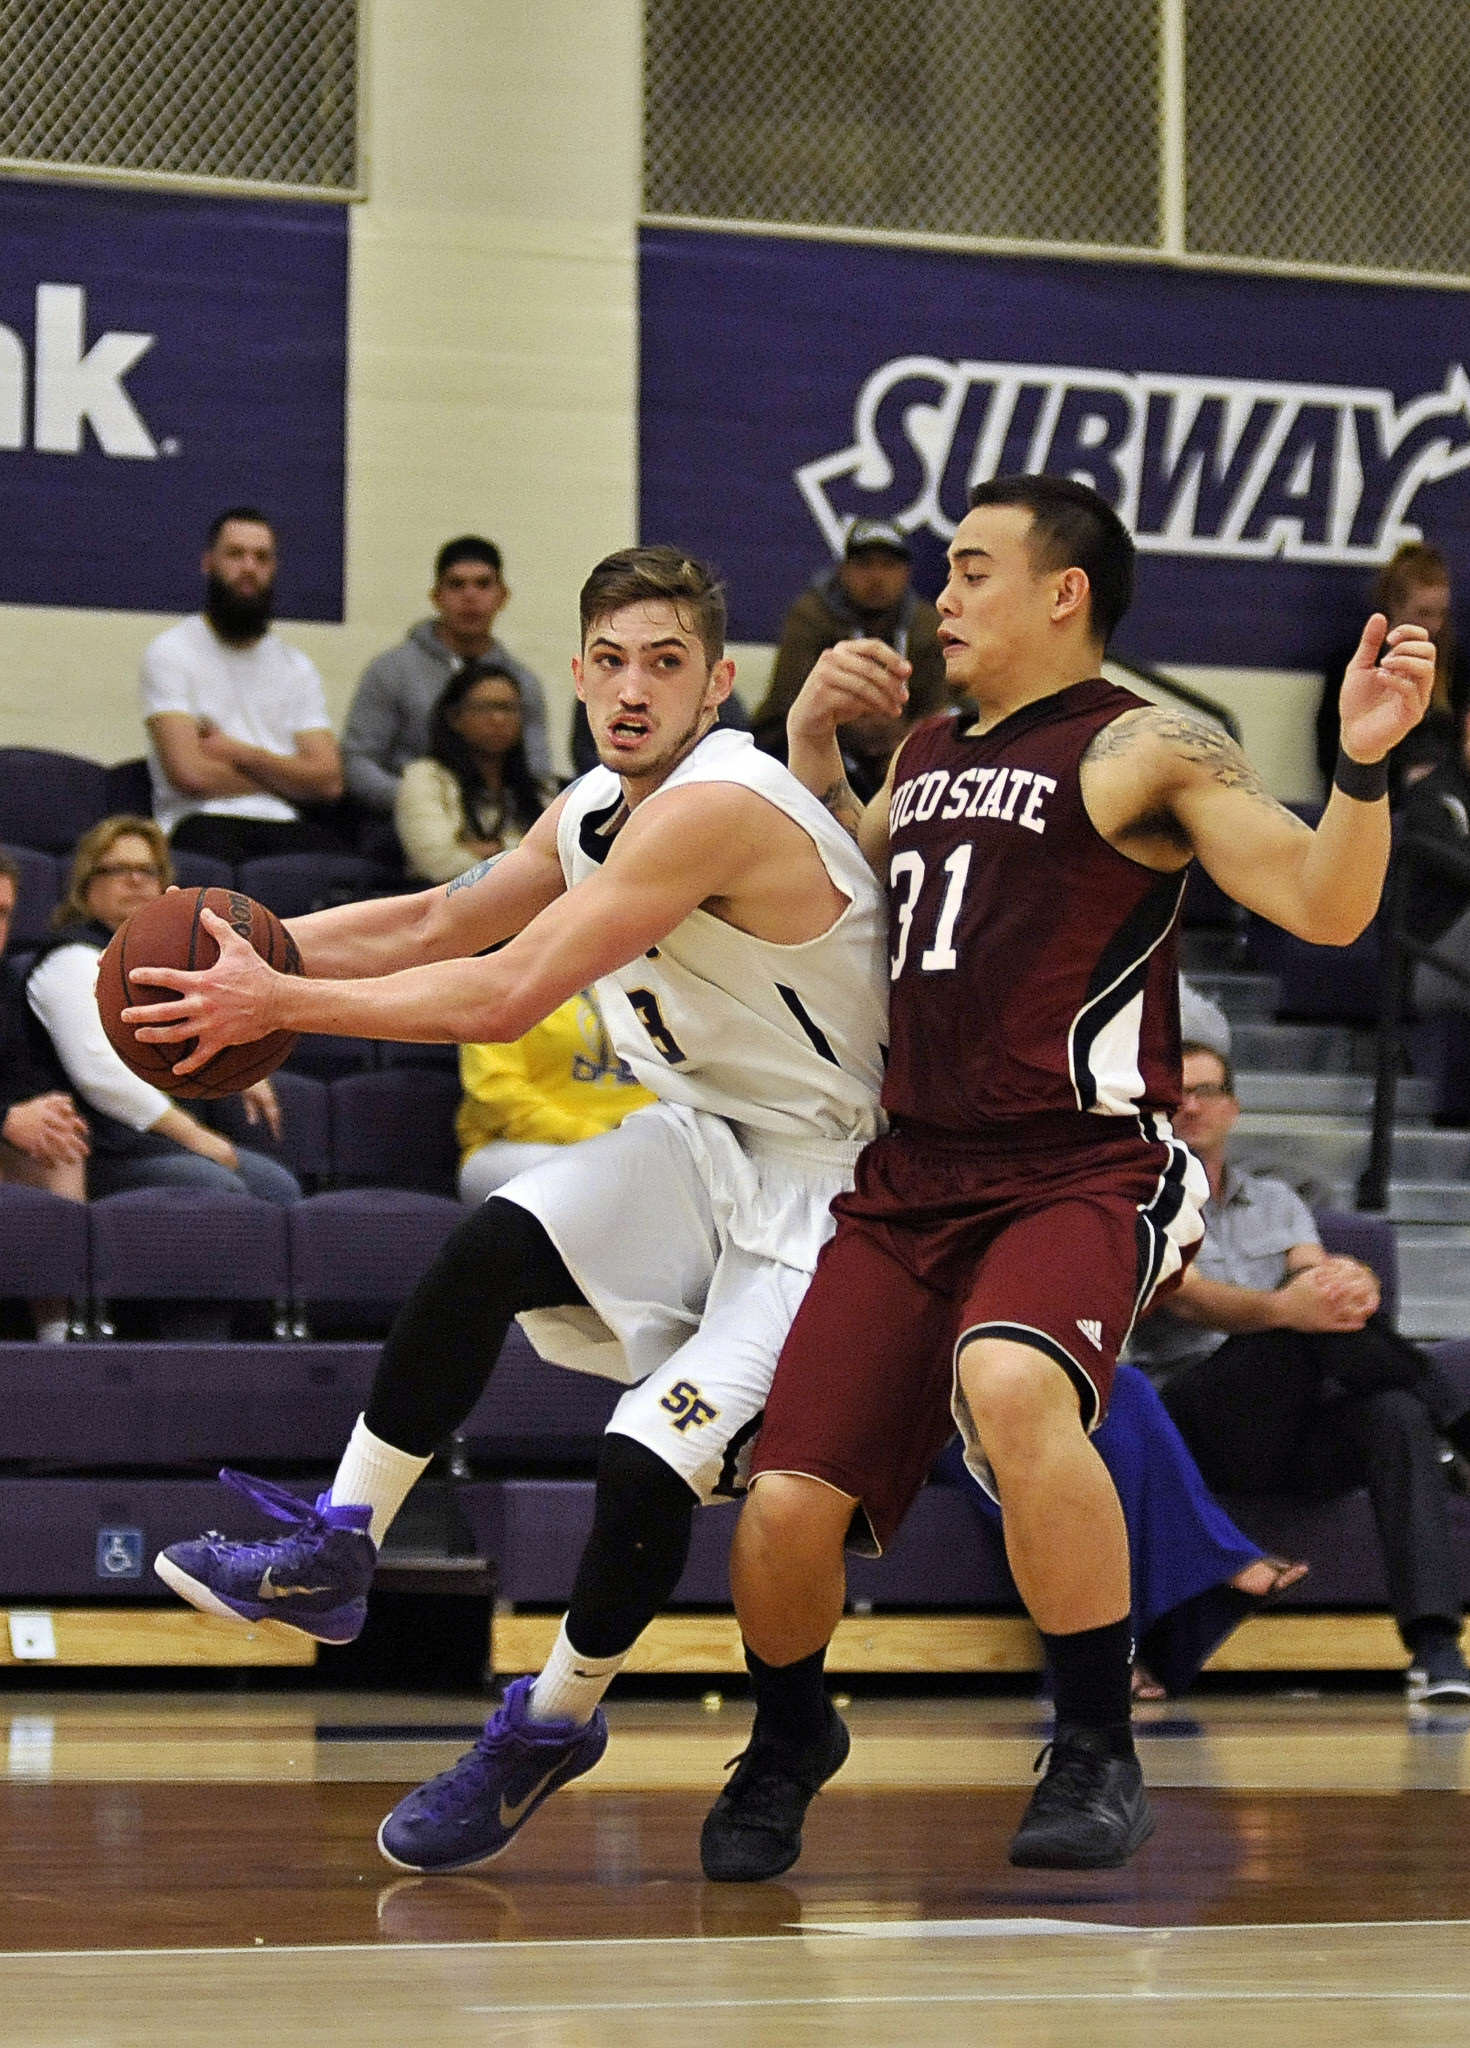 SF State Gators senior Bren Haley (#3) dribbles the ball around Chico State Wildcats player Mike Rosaroso (#31) during their game on Feb. 21, 2015. (Sara Gobets / Xpress)